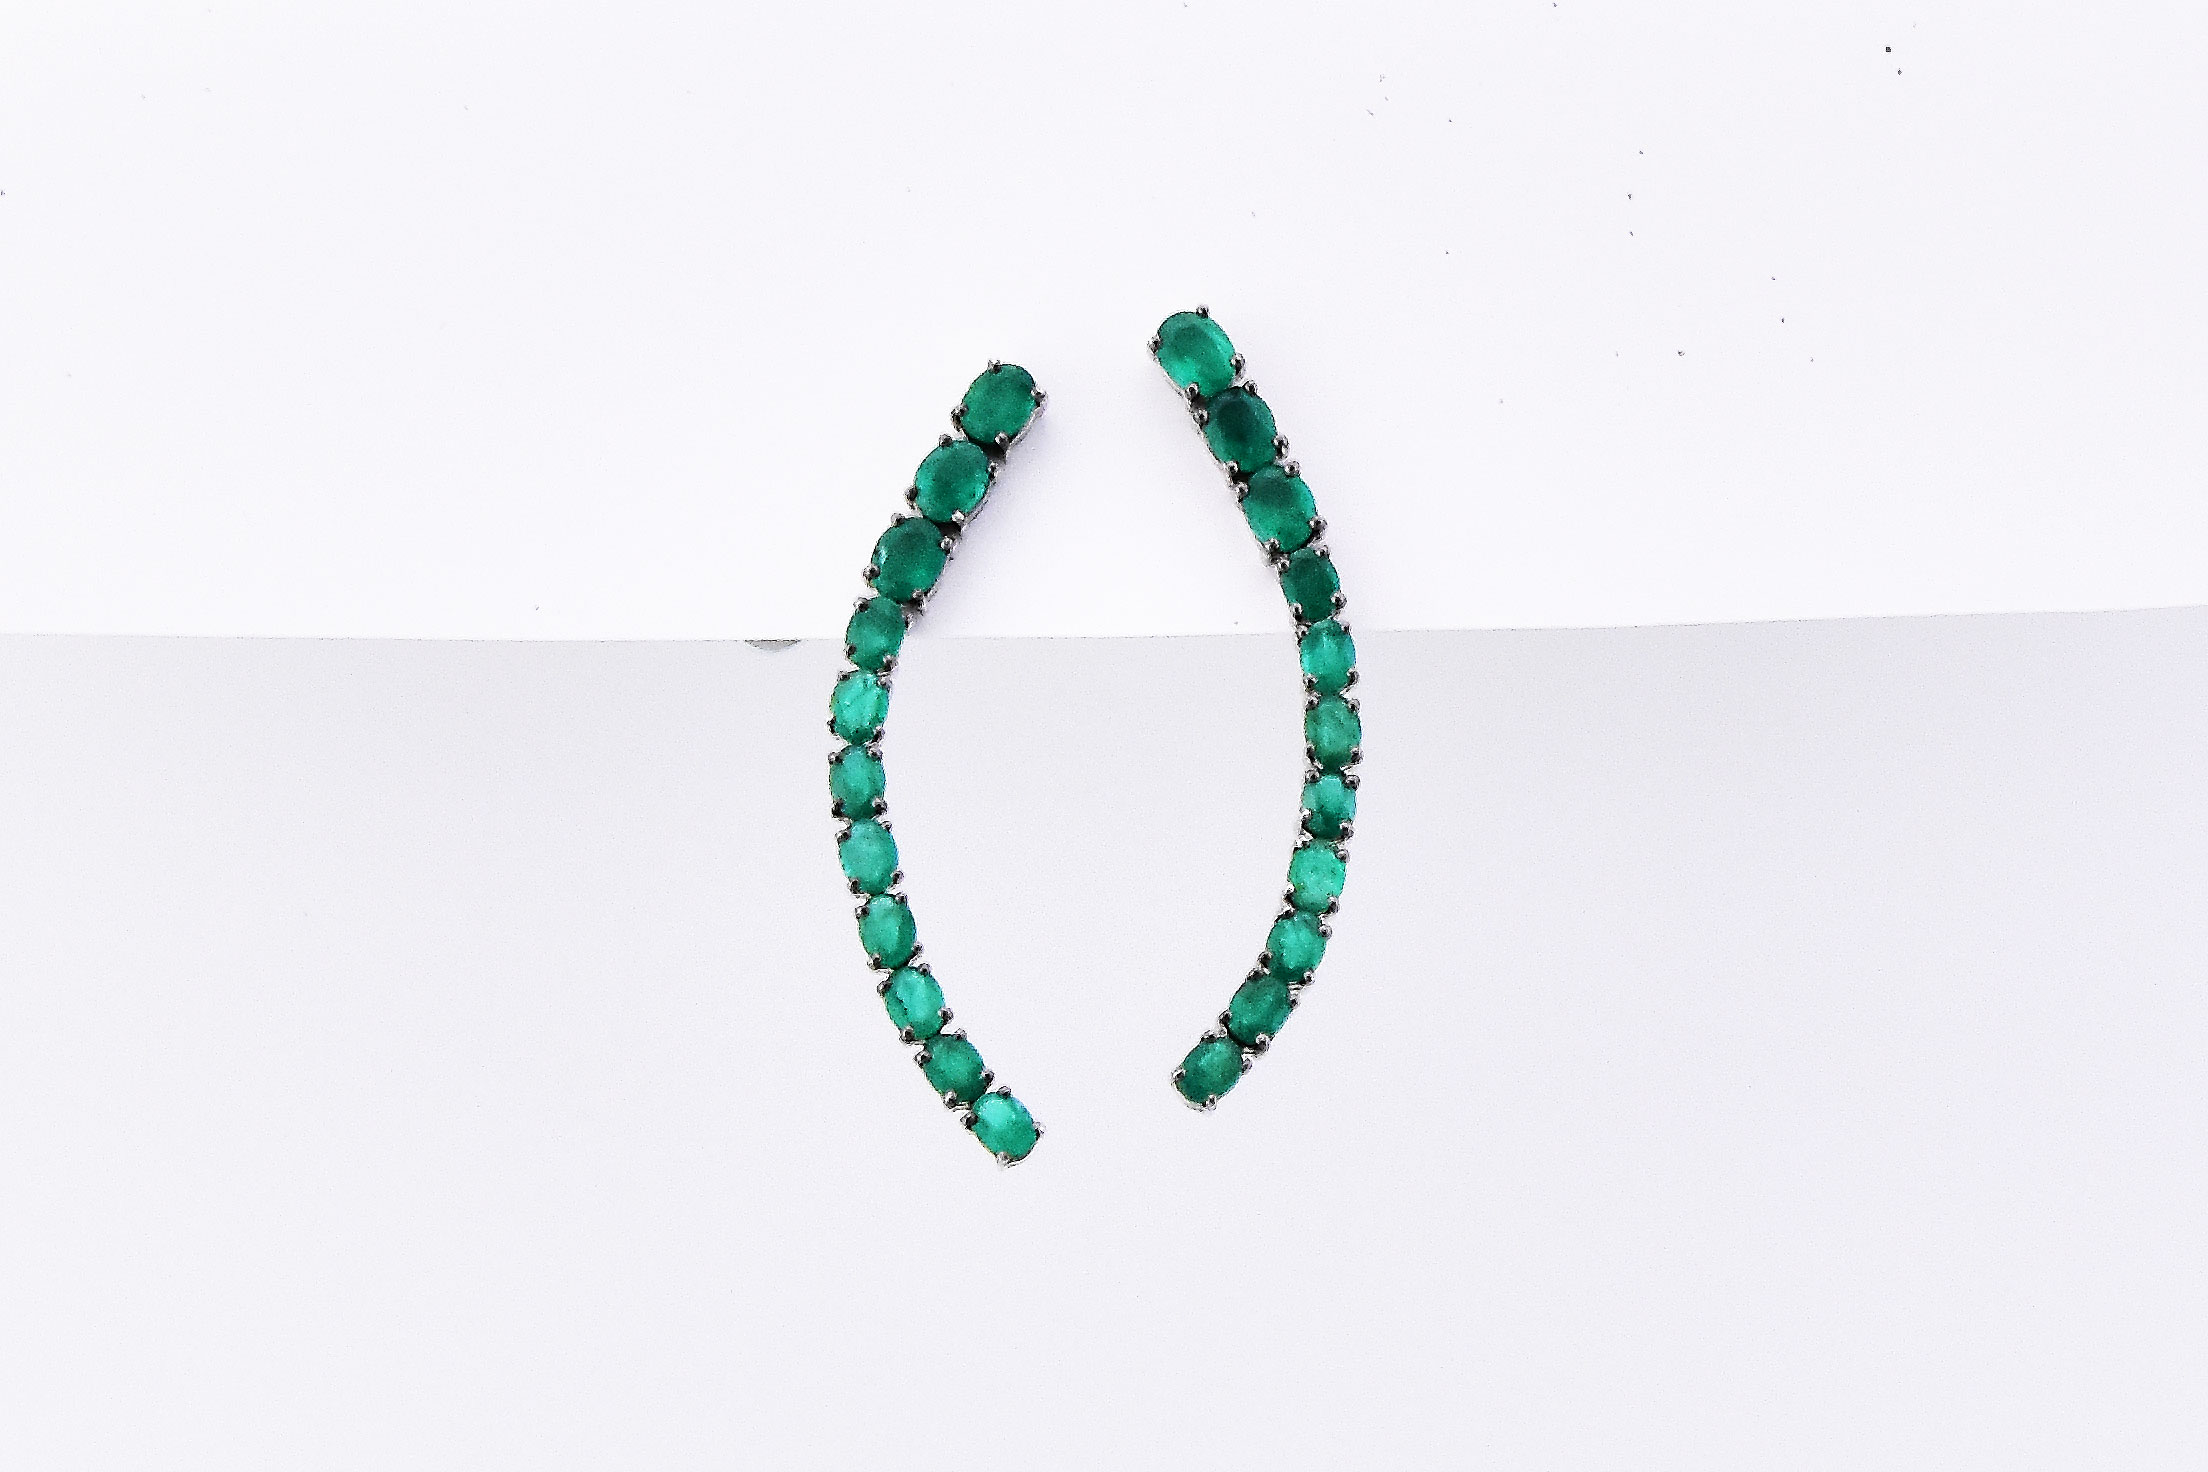 4 Carats Total Weight Emerald Ear Crawlers